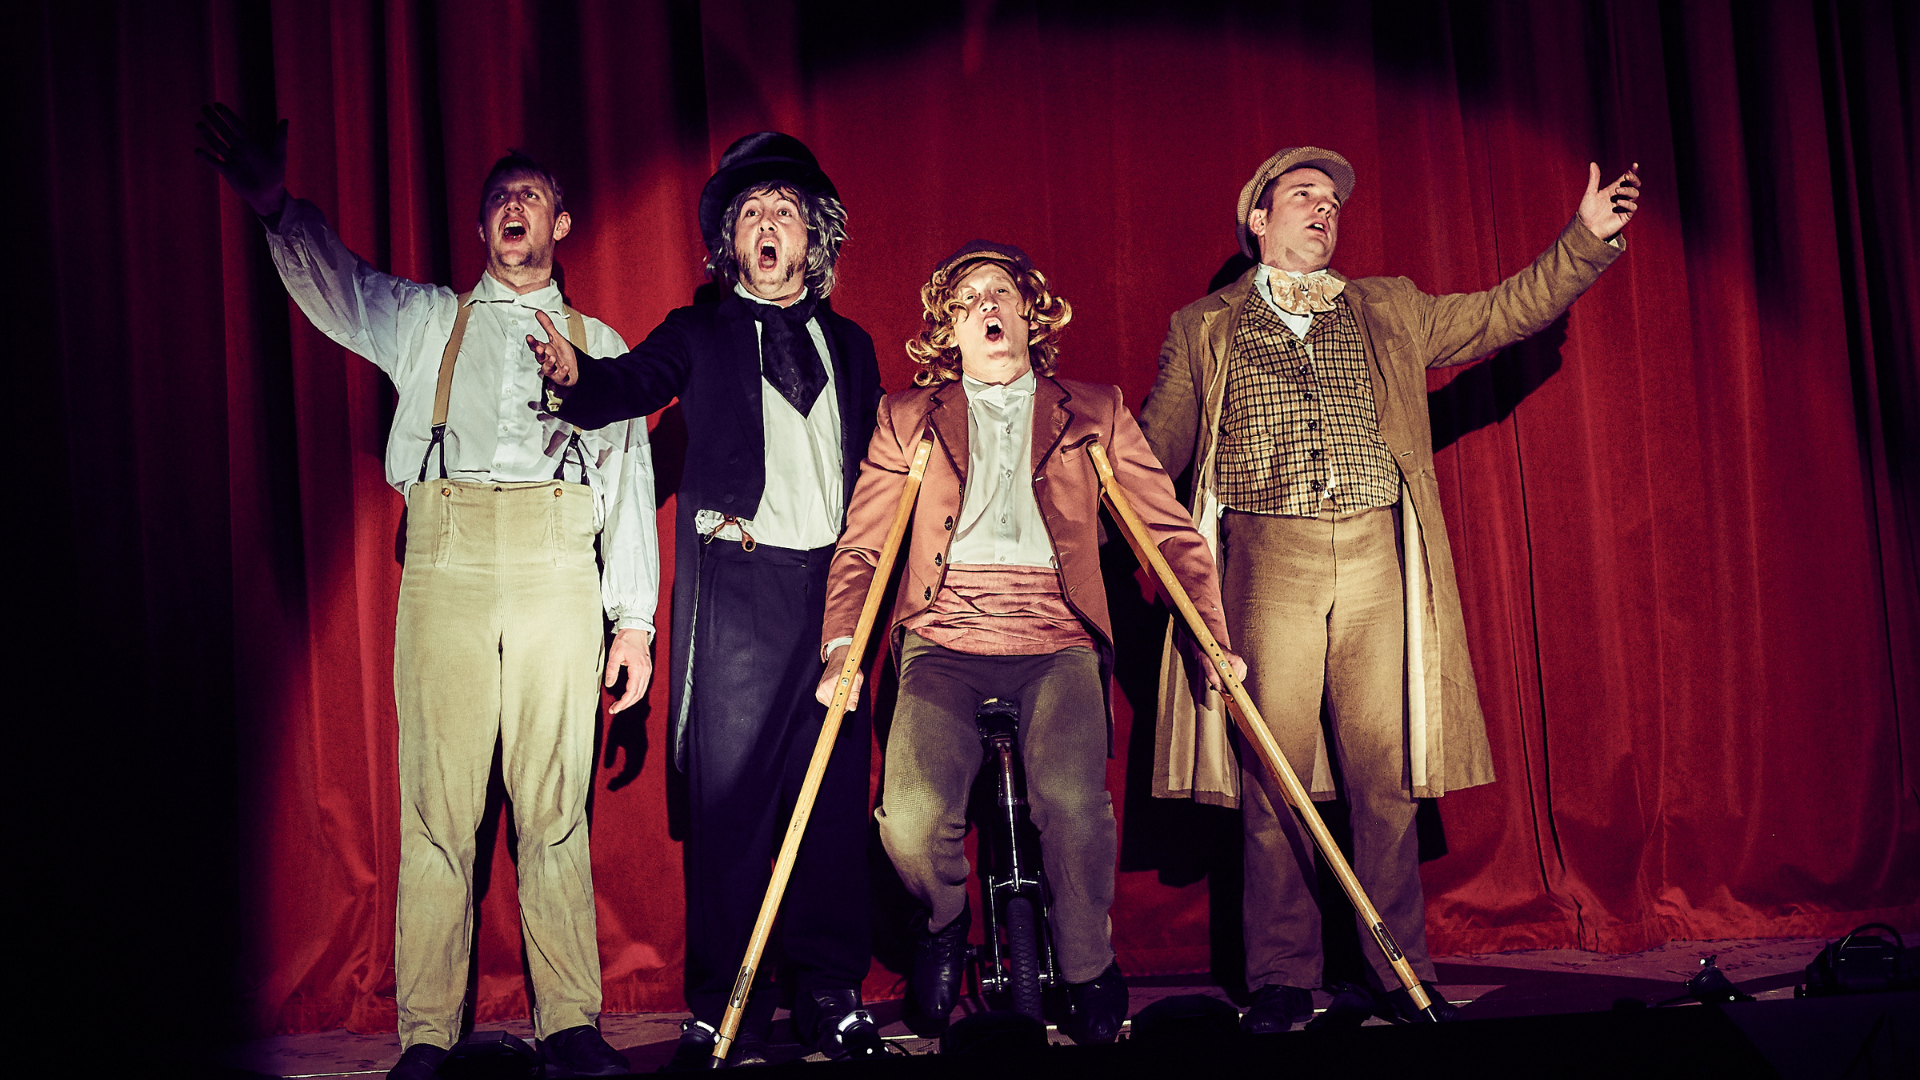 A Christmas Carol production shot: 4 character stood in front of the curtain singing. 1 character is on crutches.